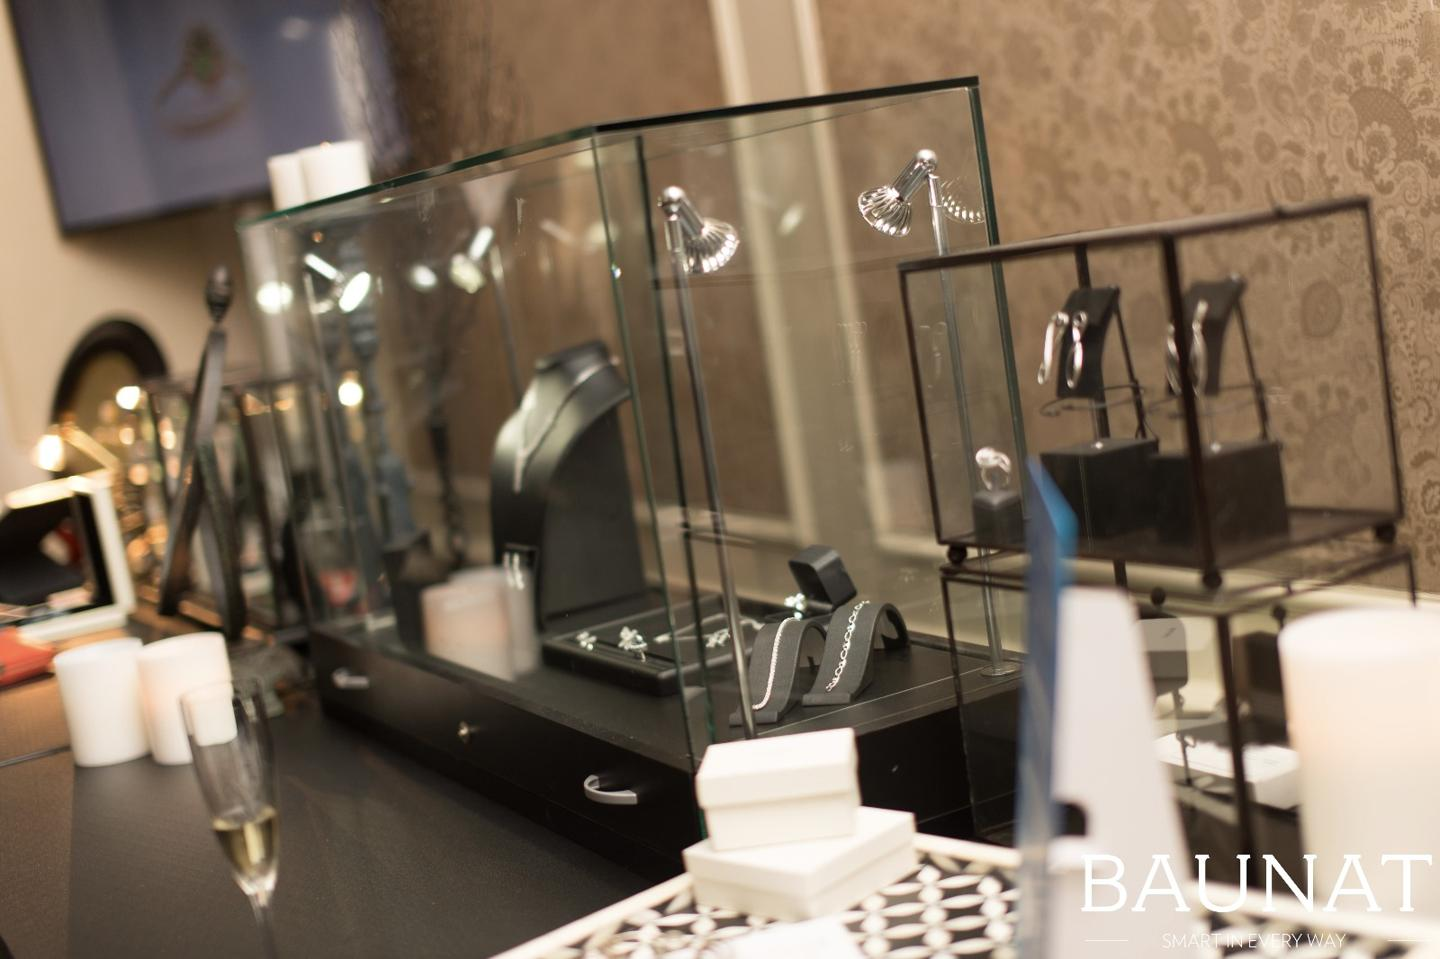 De showroom van BAUNAT in diamantcentrum Antwerpen.